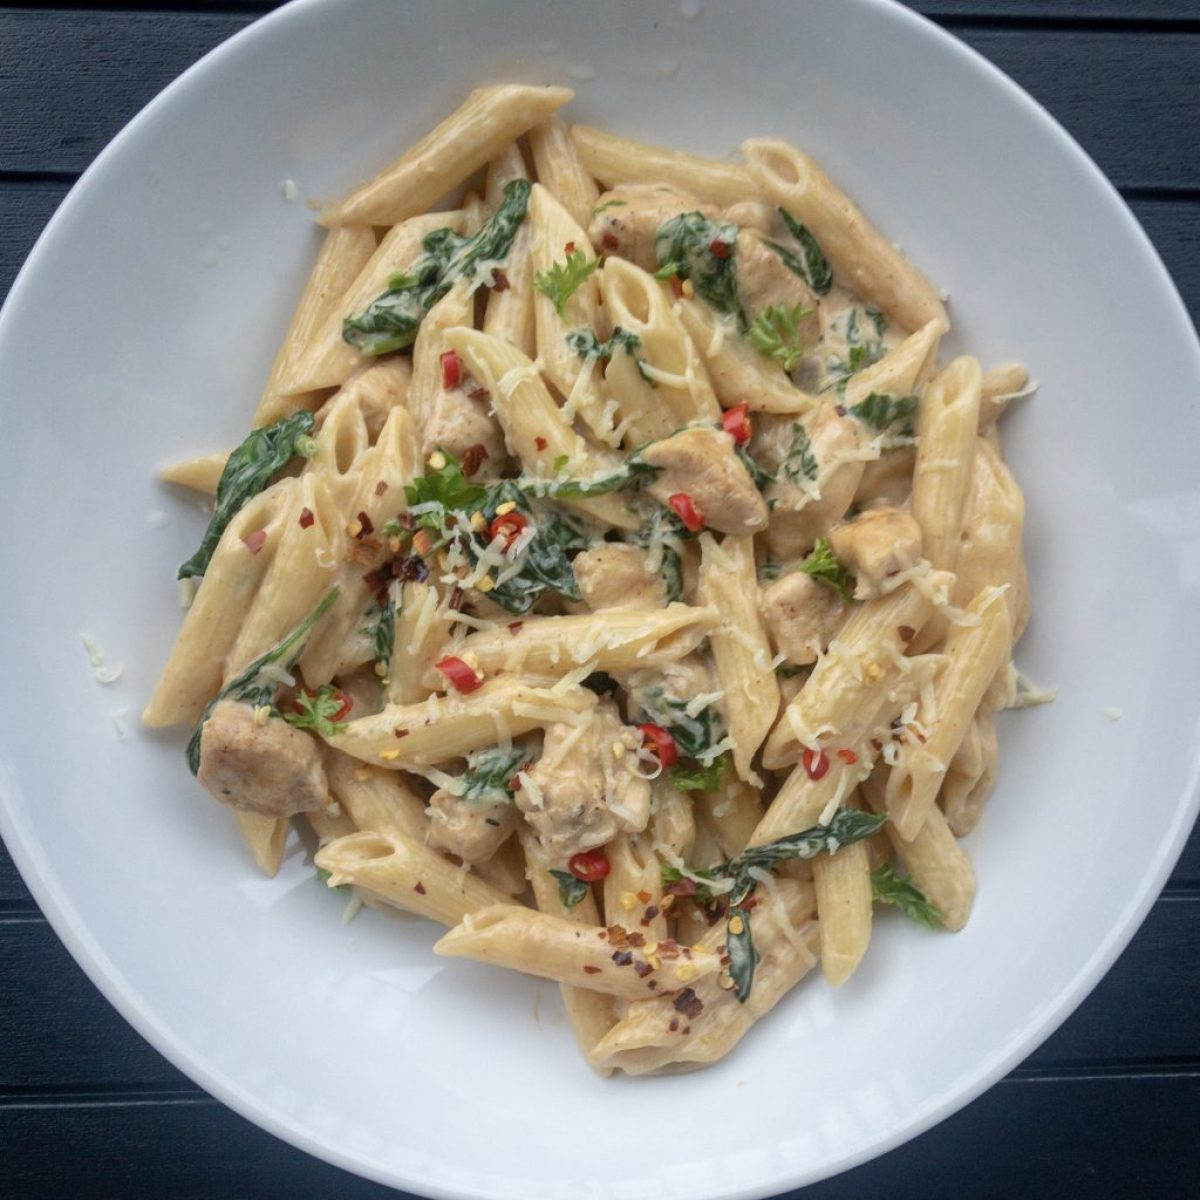 Cajun Chicken and spinach pasta ready to serve